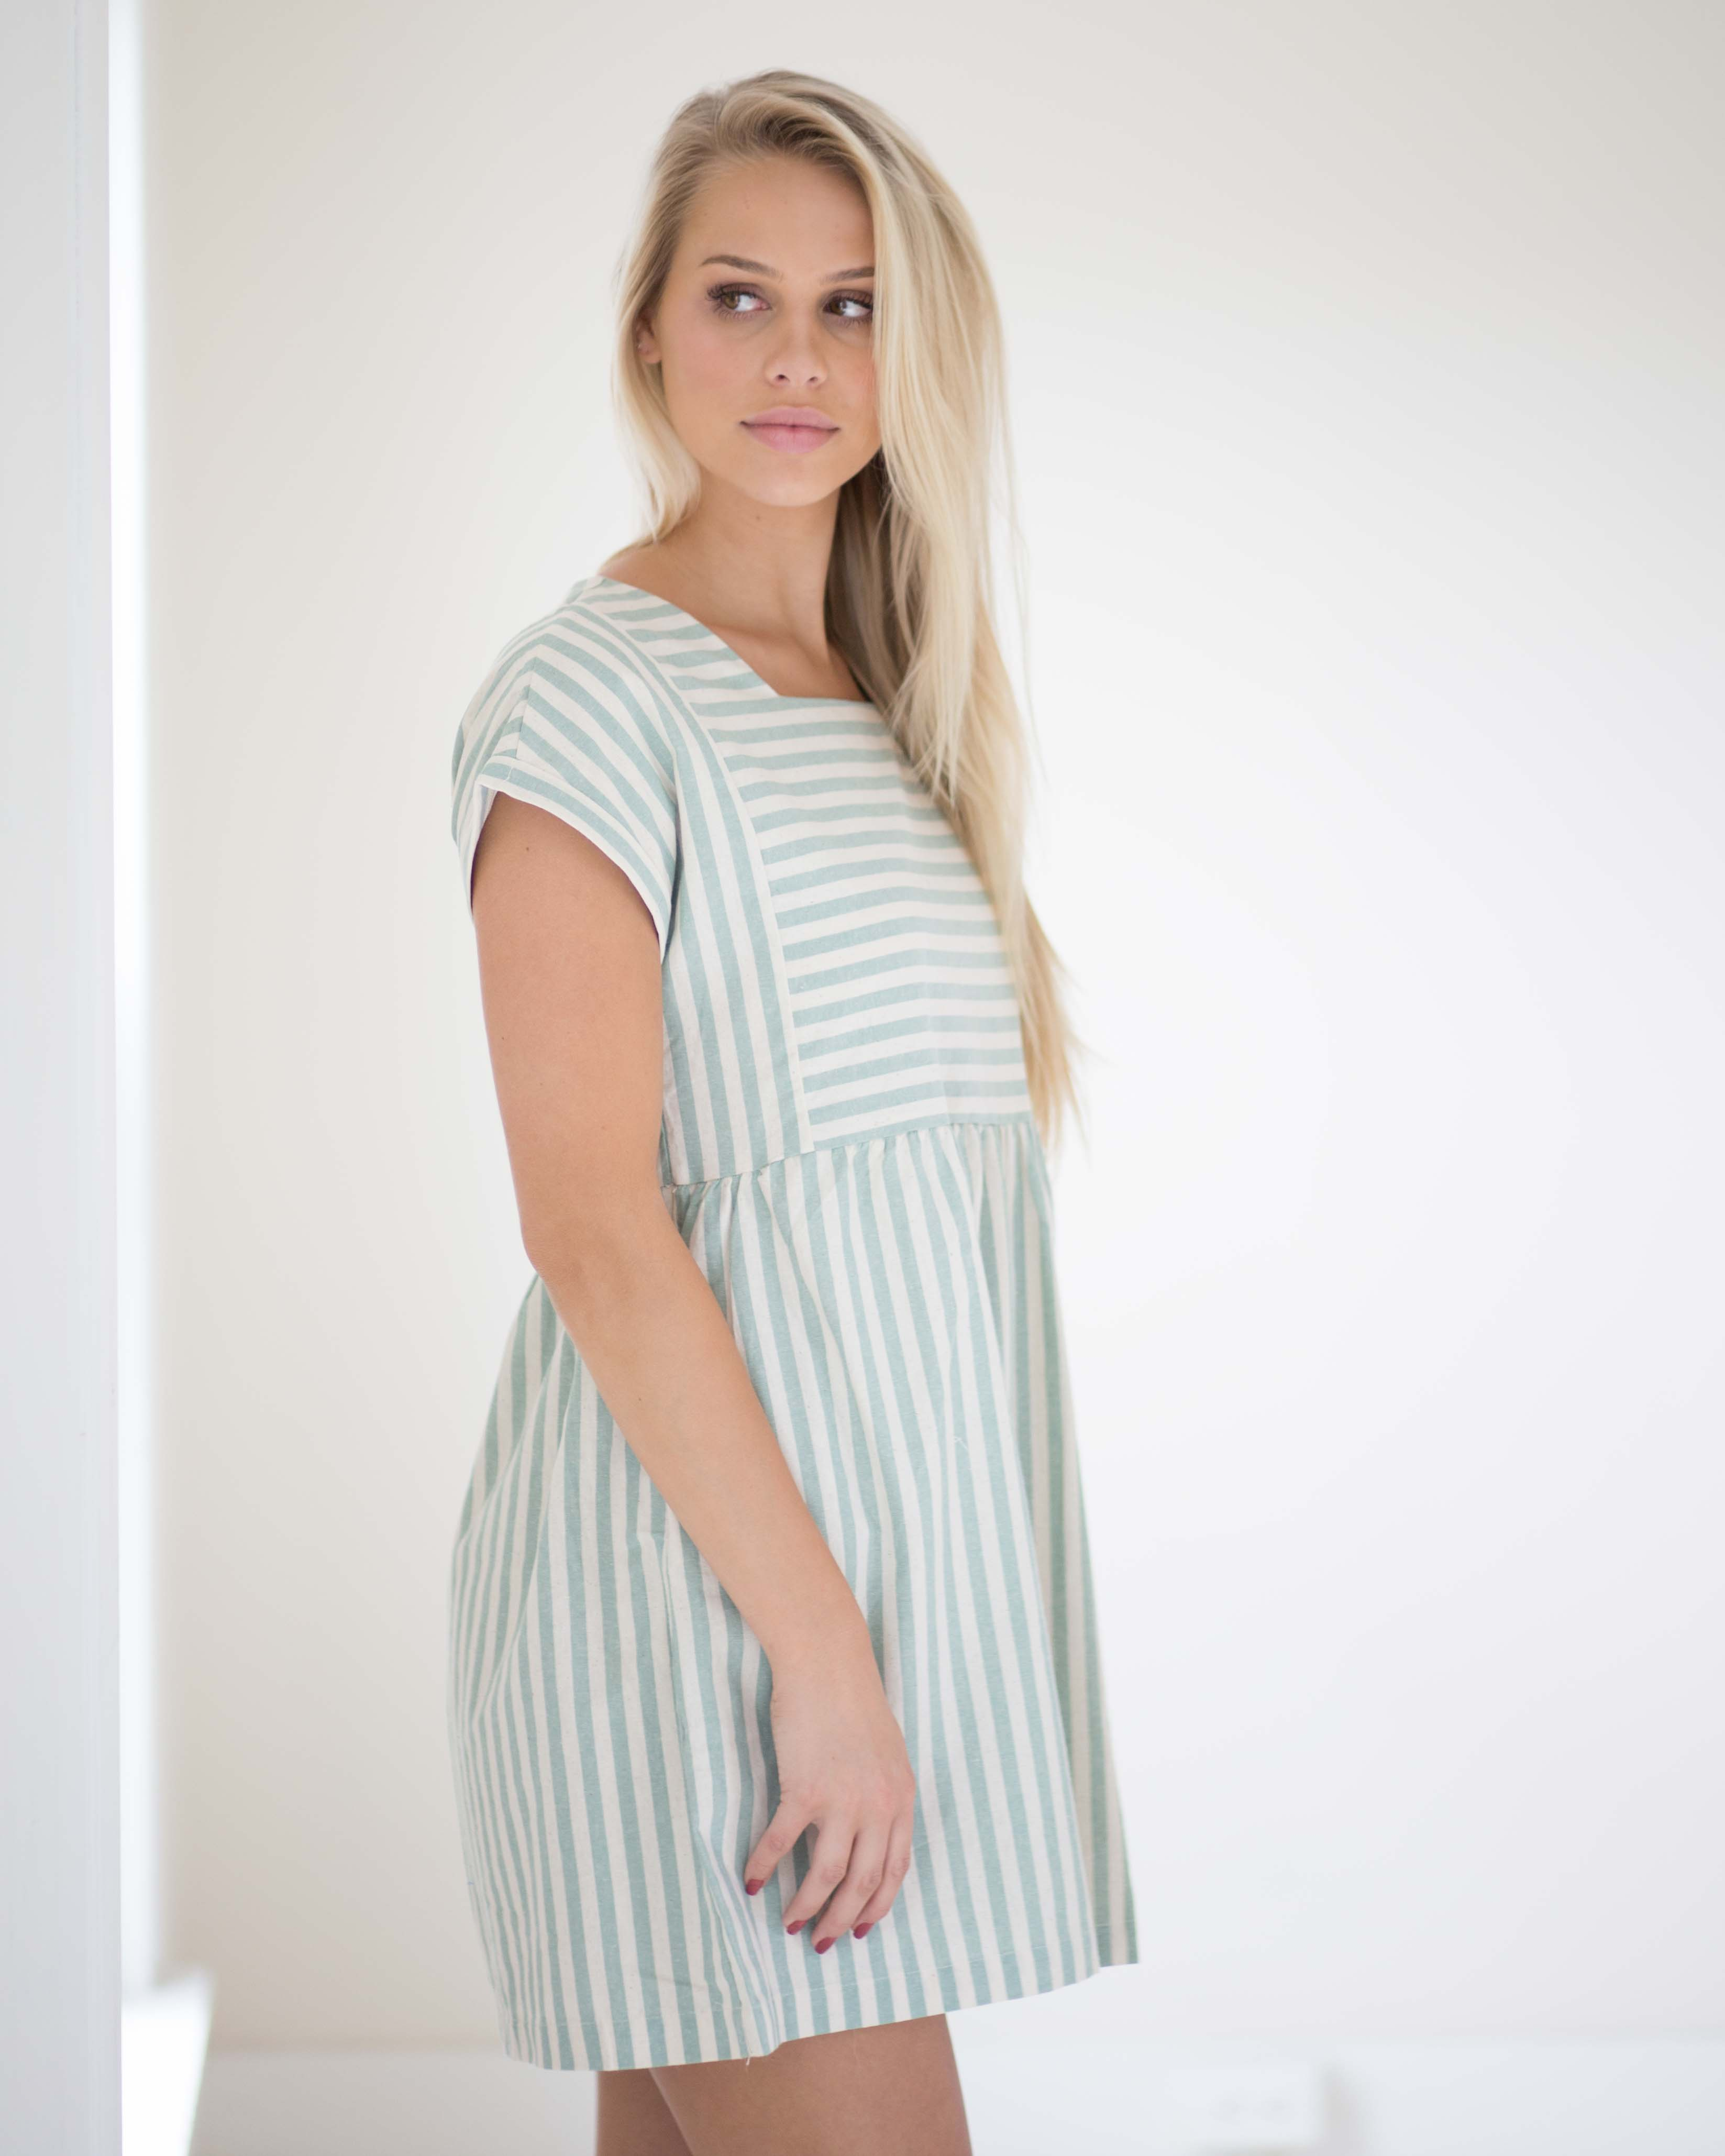 Anderson Striped Dress | Rose & Remington